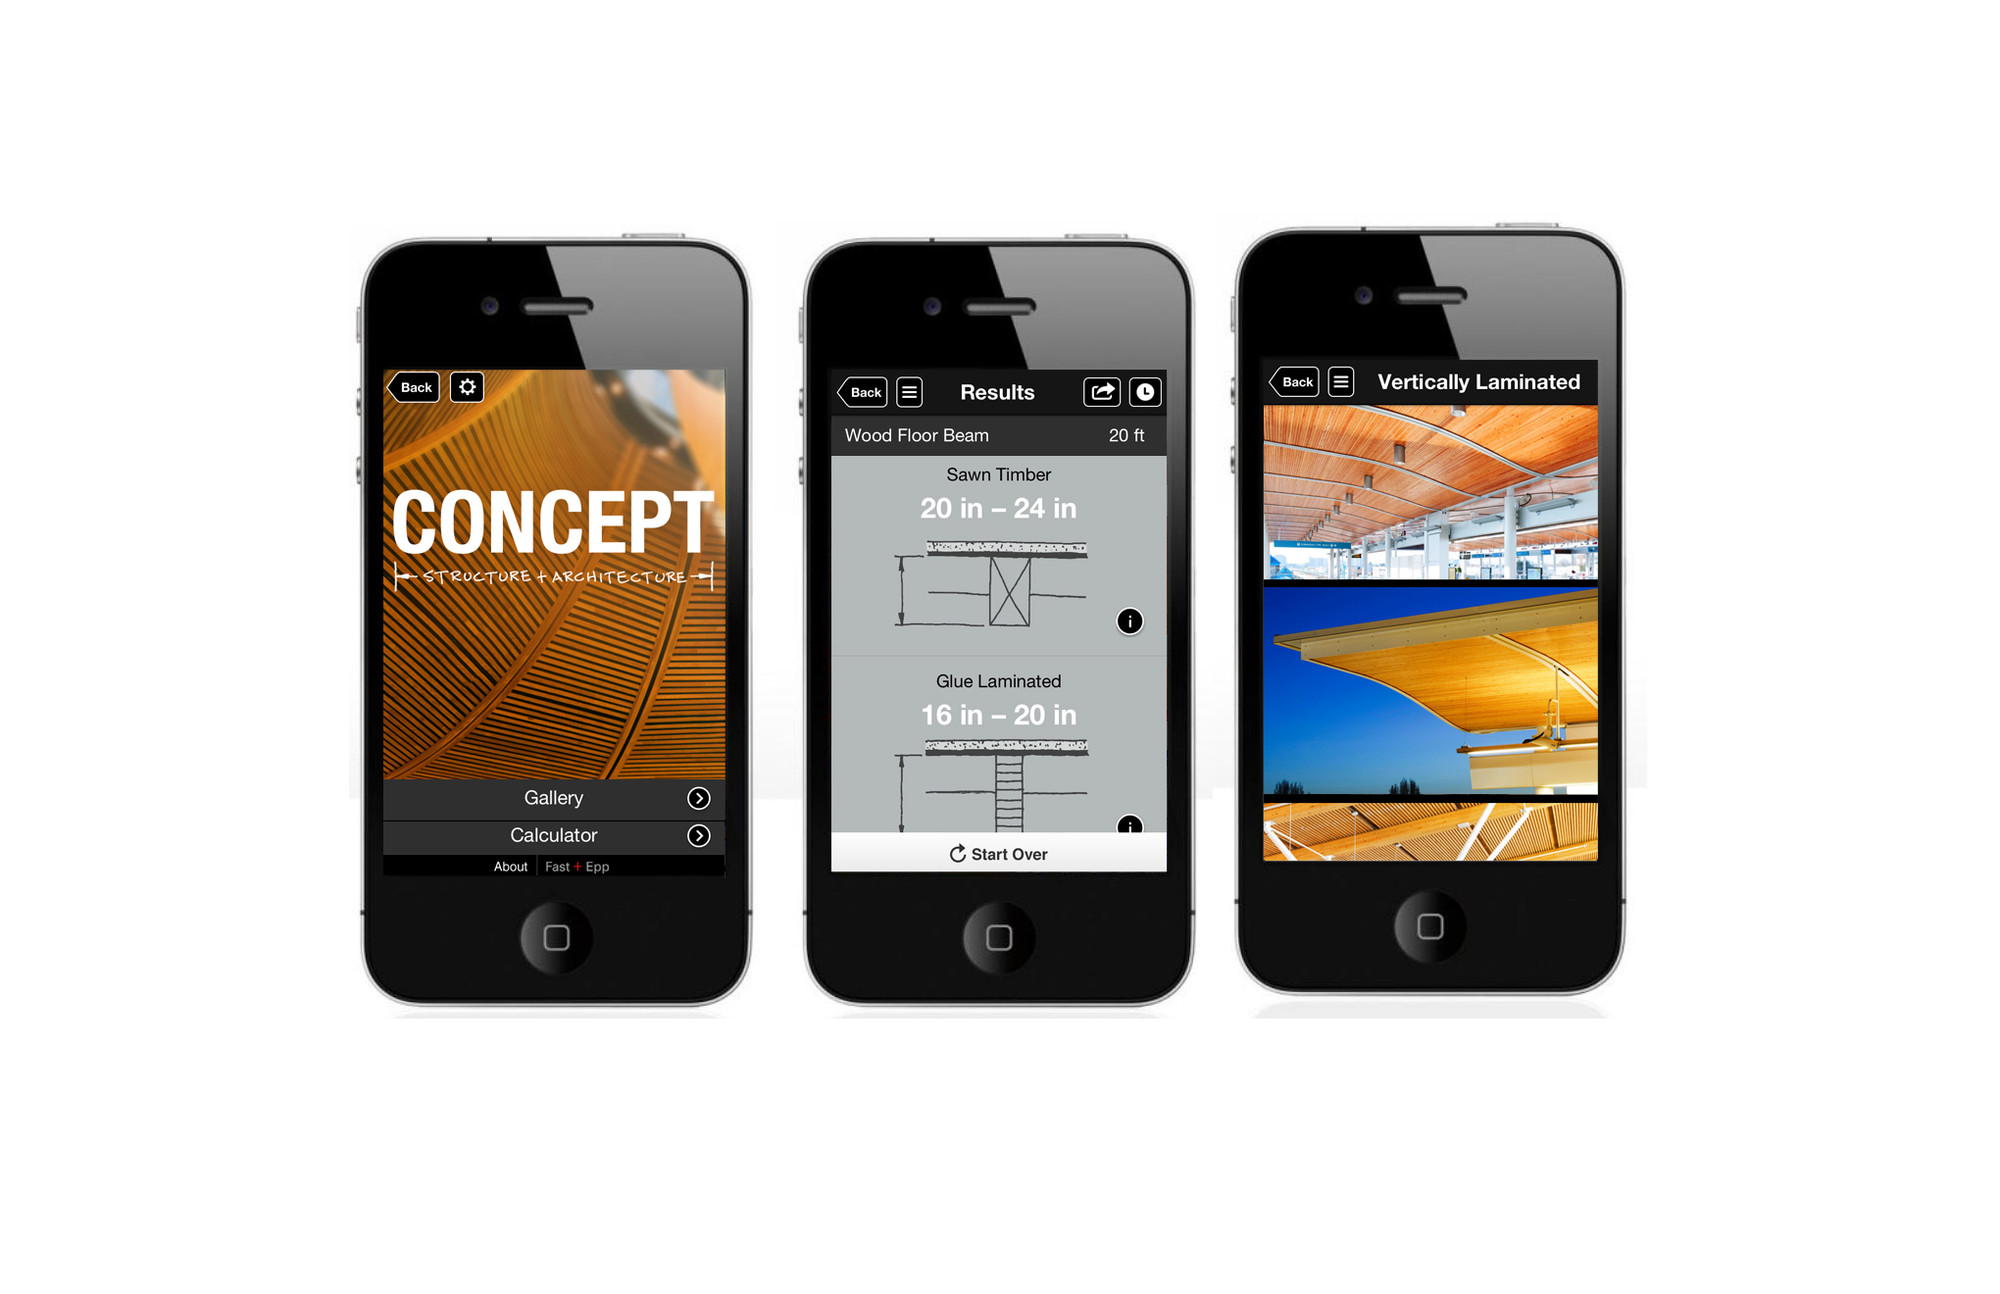 App Review: 'Concept' - An Idea Calculator, Interface on iOS. Image Courtesy of Fast + Epp